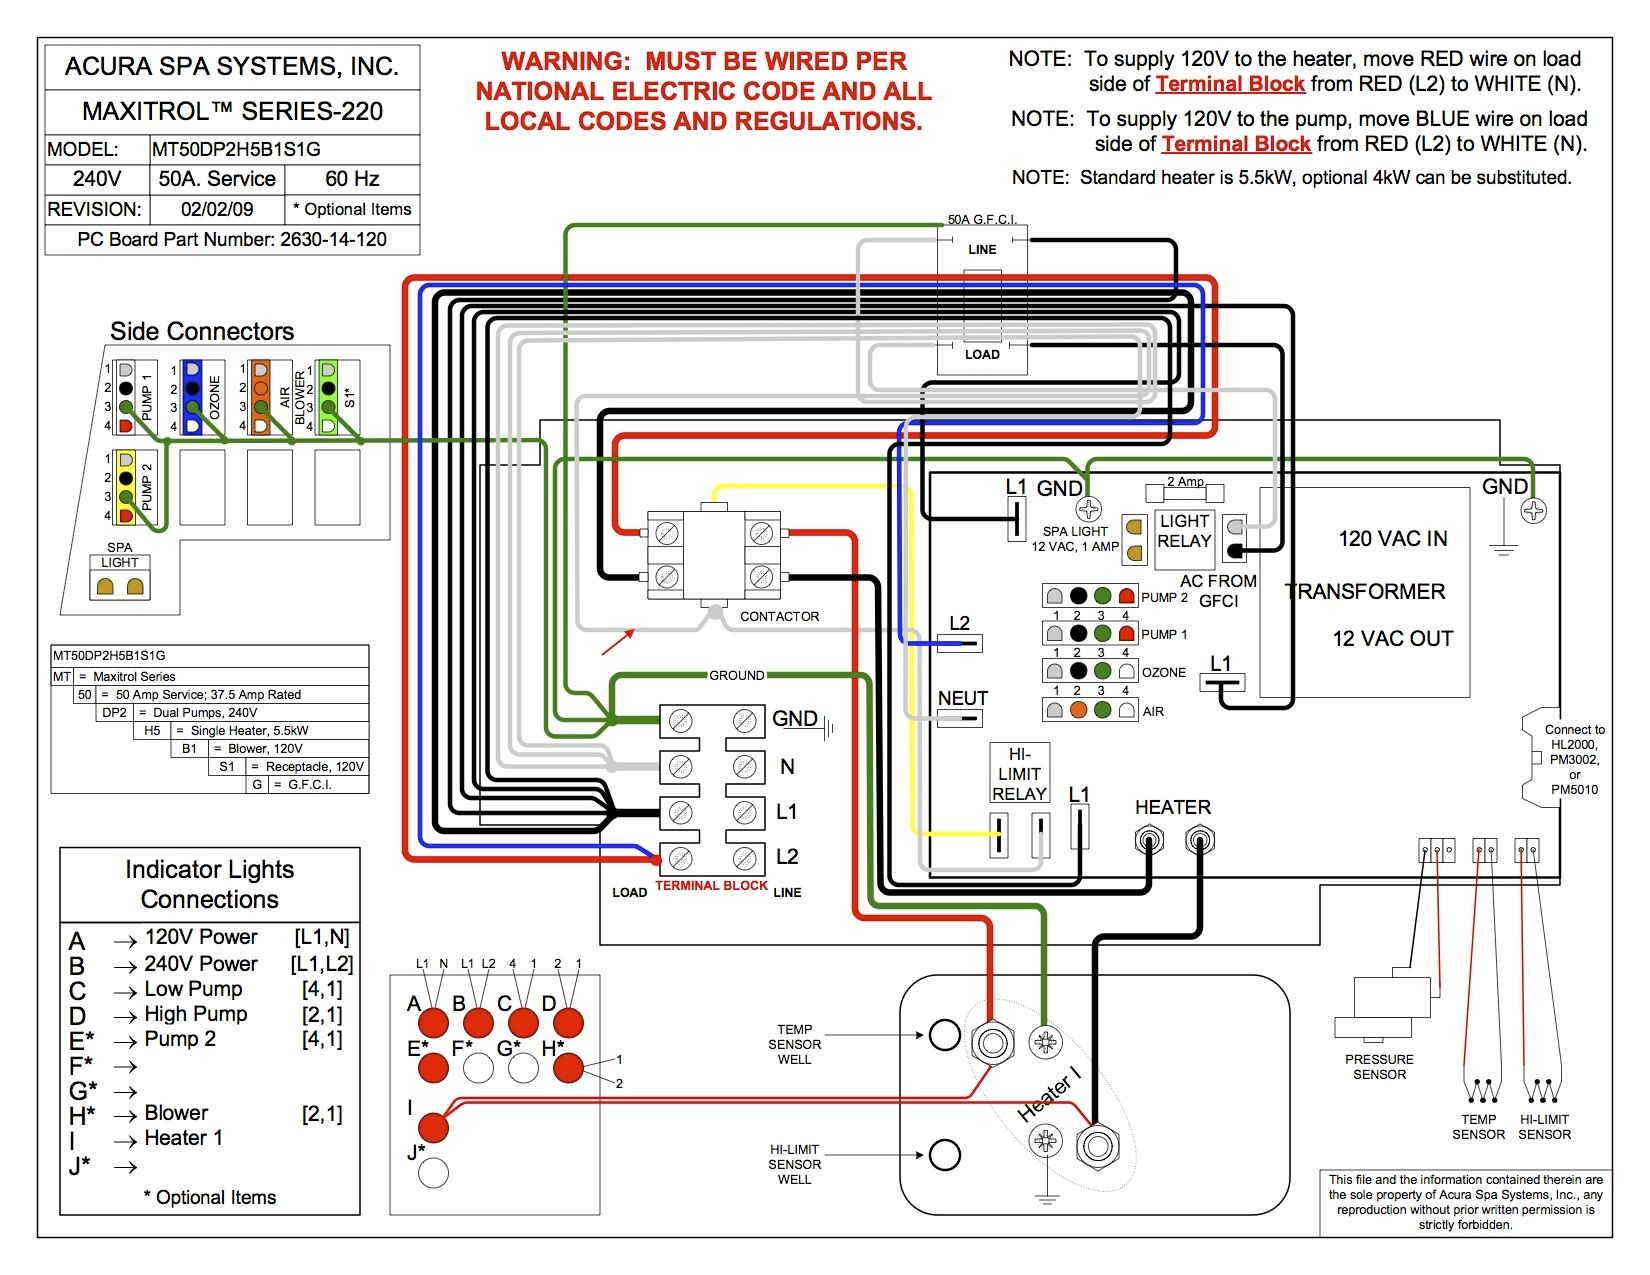 Liberty Stair Lift Wiring Diagram 33 Images Century Pump Motor Acura Spa Mt50dp2h5b1s1g Motors Used In Ultra